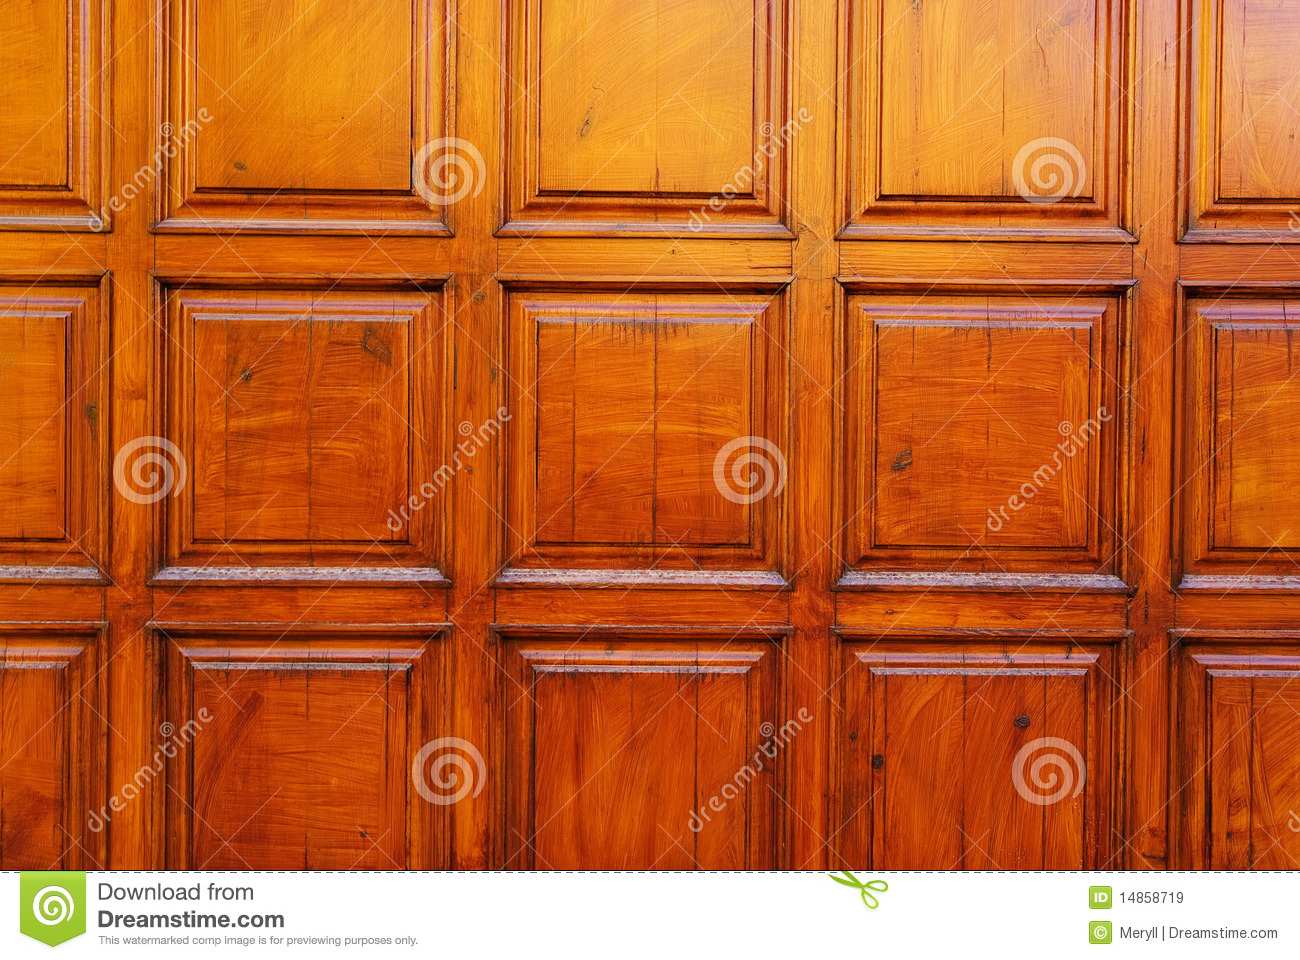 Wood door design stock image image of frame garage 14858719 - Wood design image ...